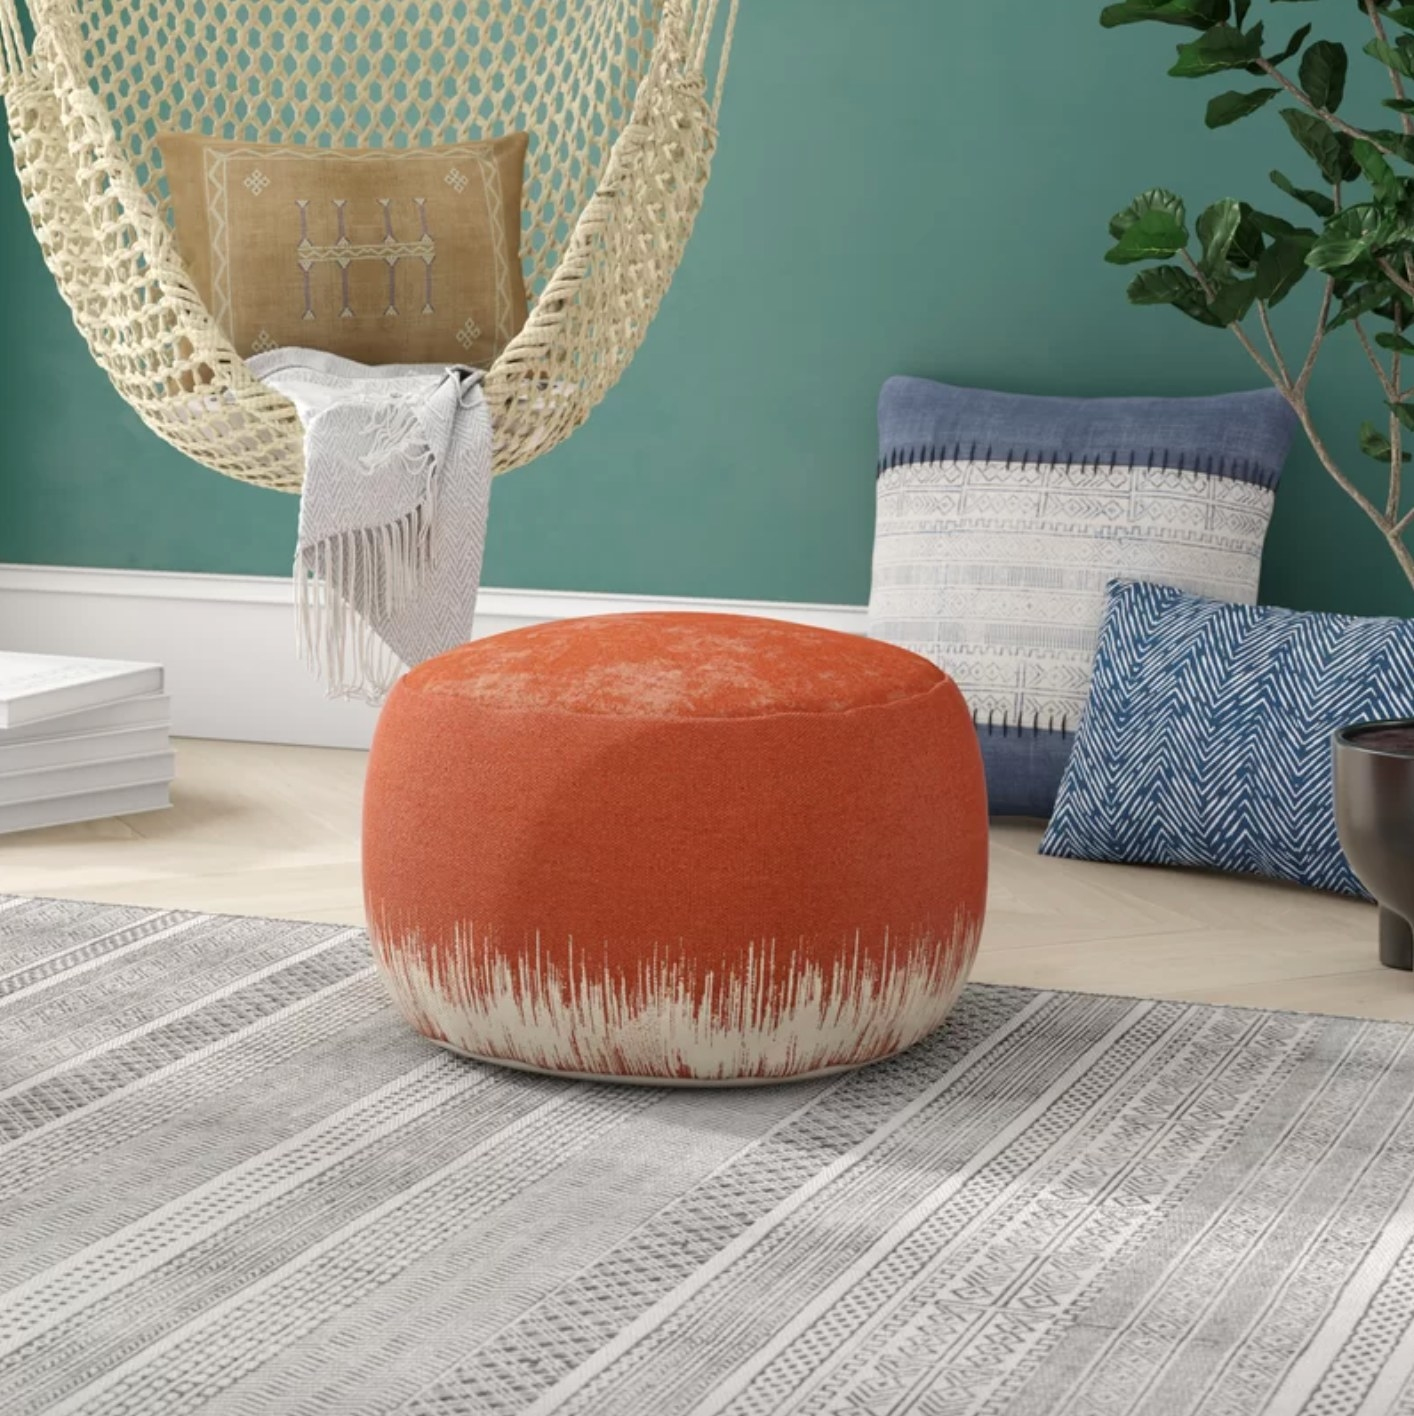 The round abstract pouf ottoman in clay